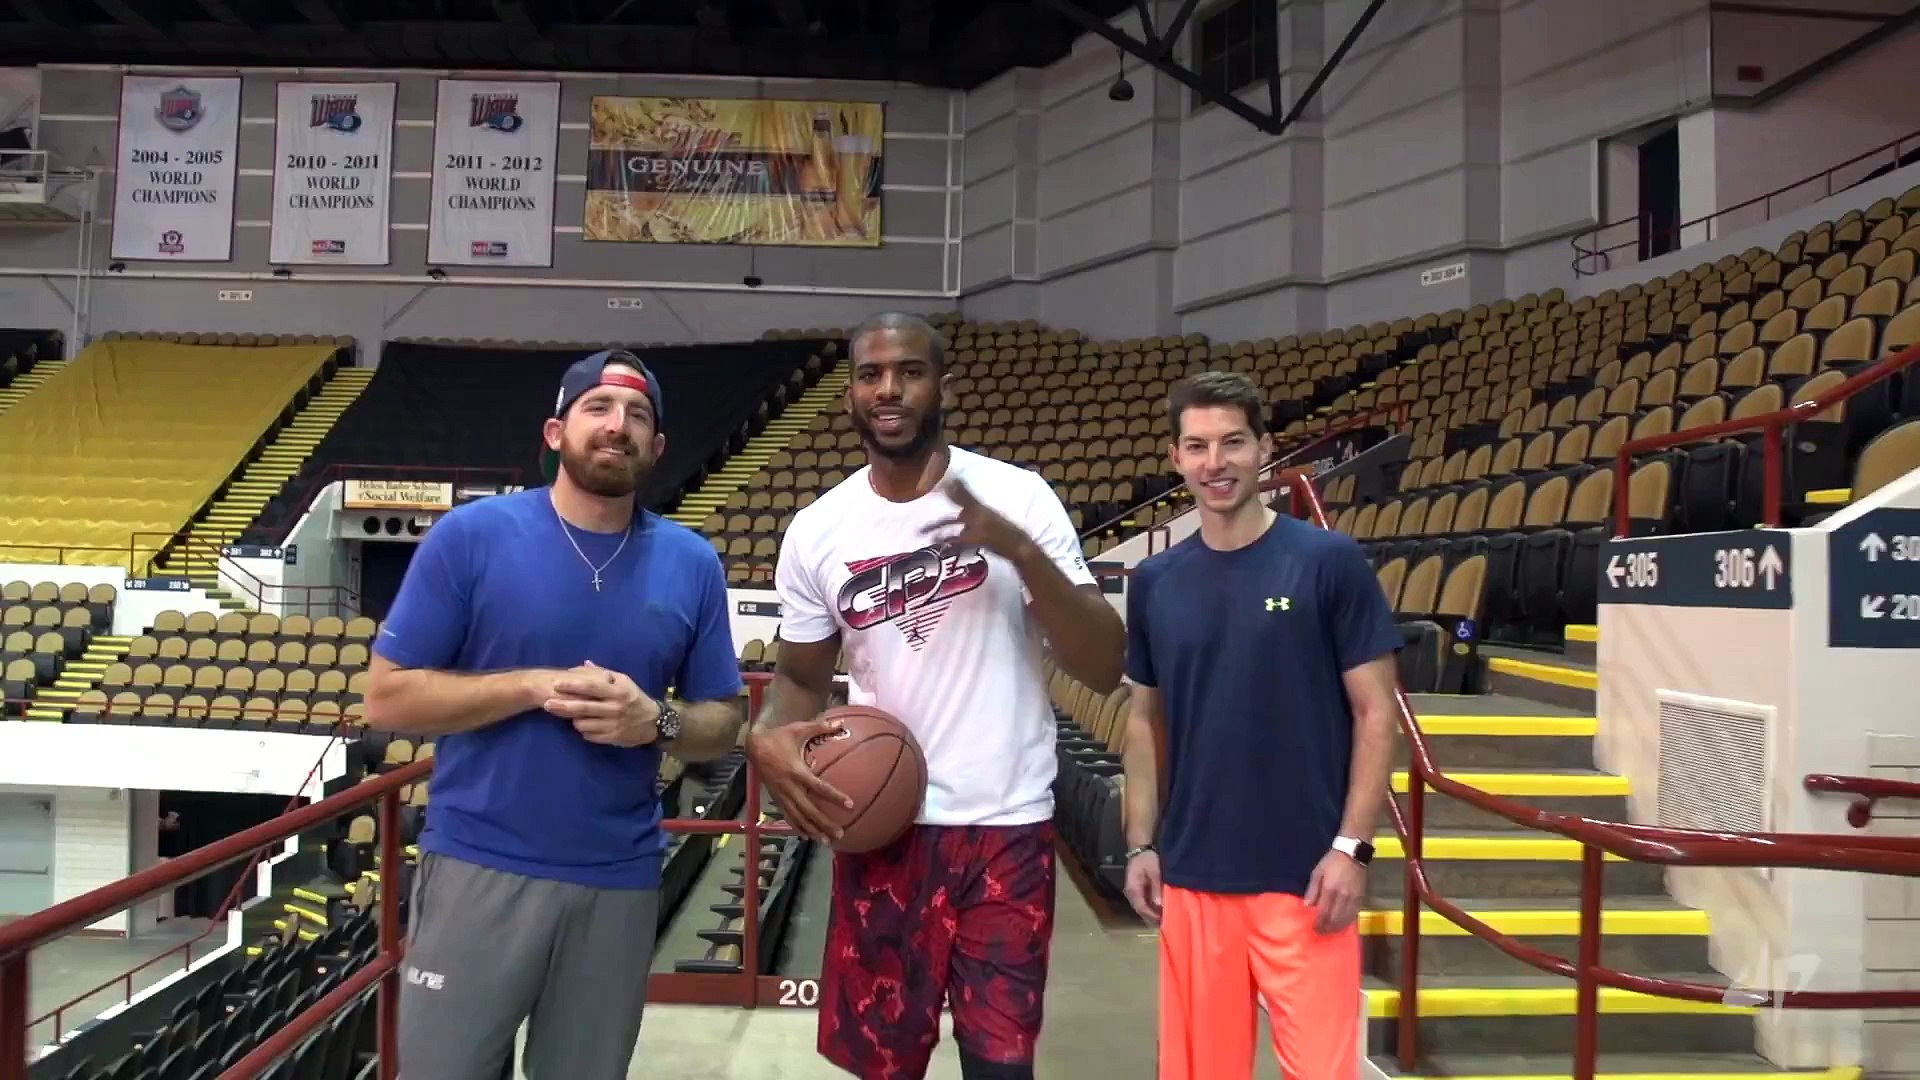 NBA and NFL Players fights for best Trick Shots in a Gym! Aaron Rodgers and Chris Paul